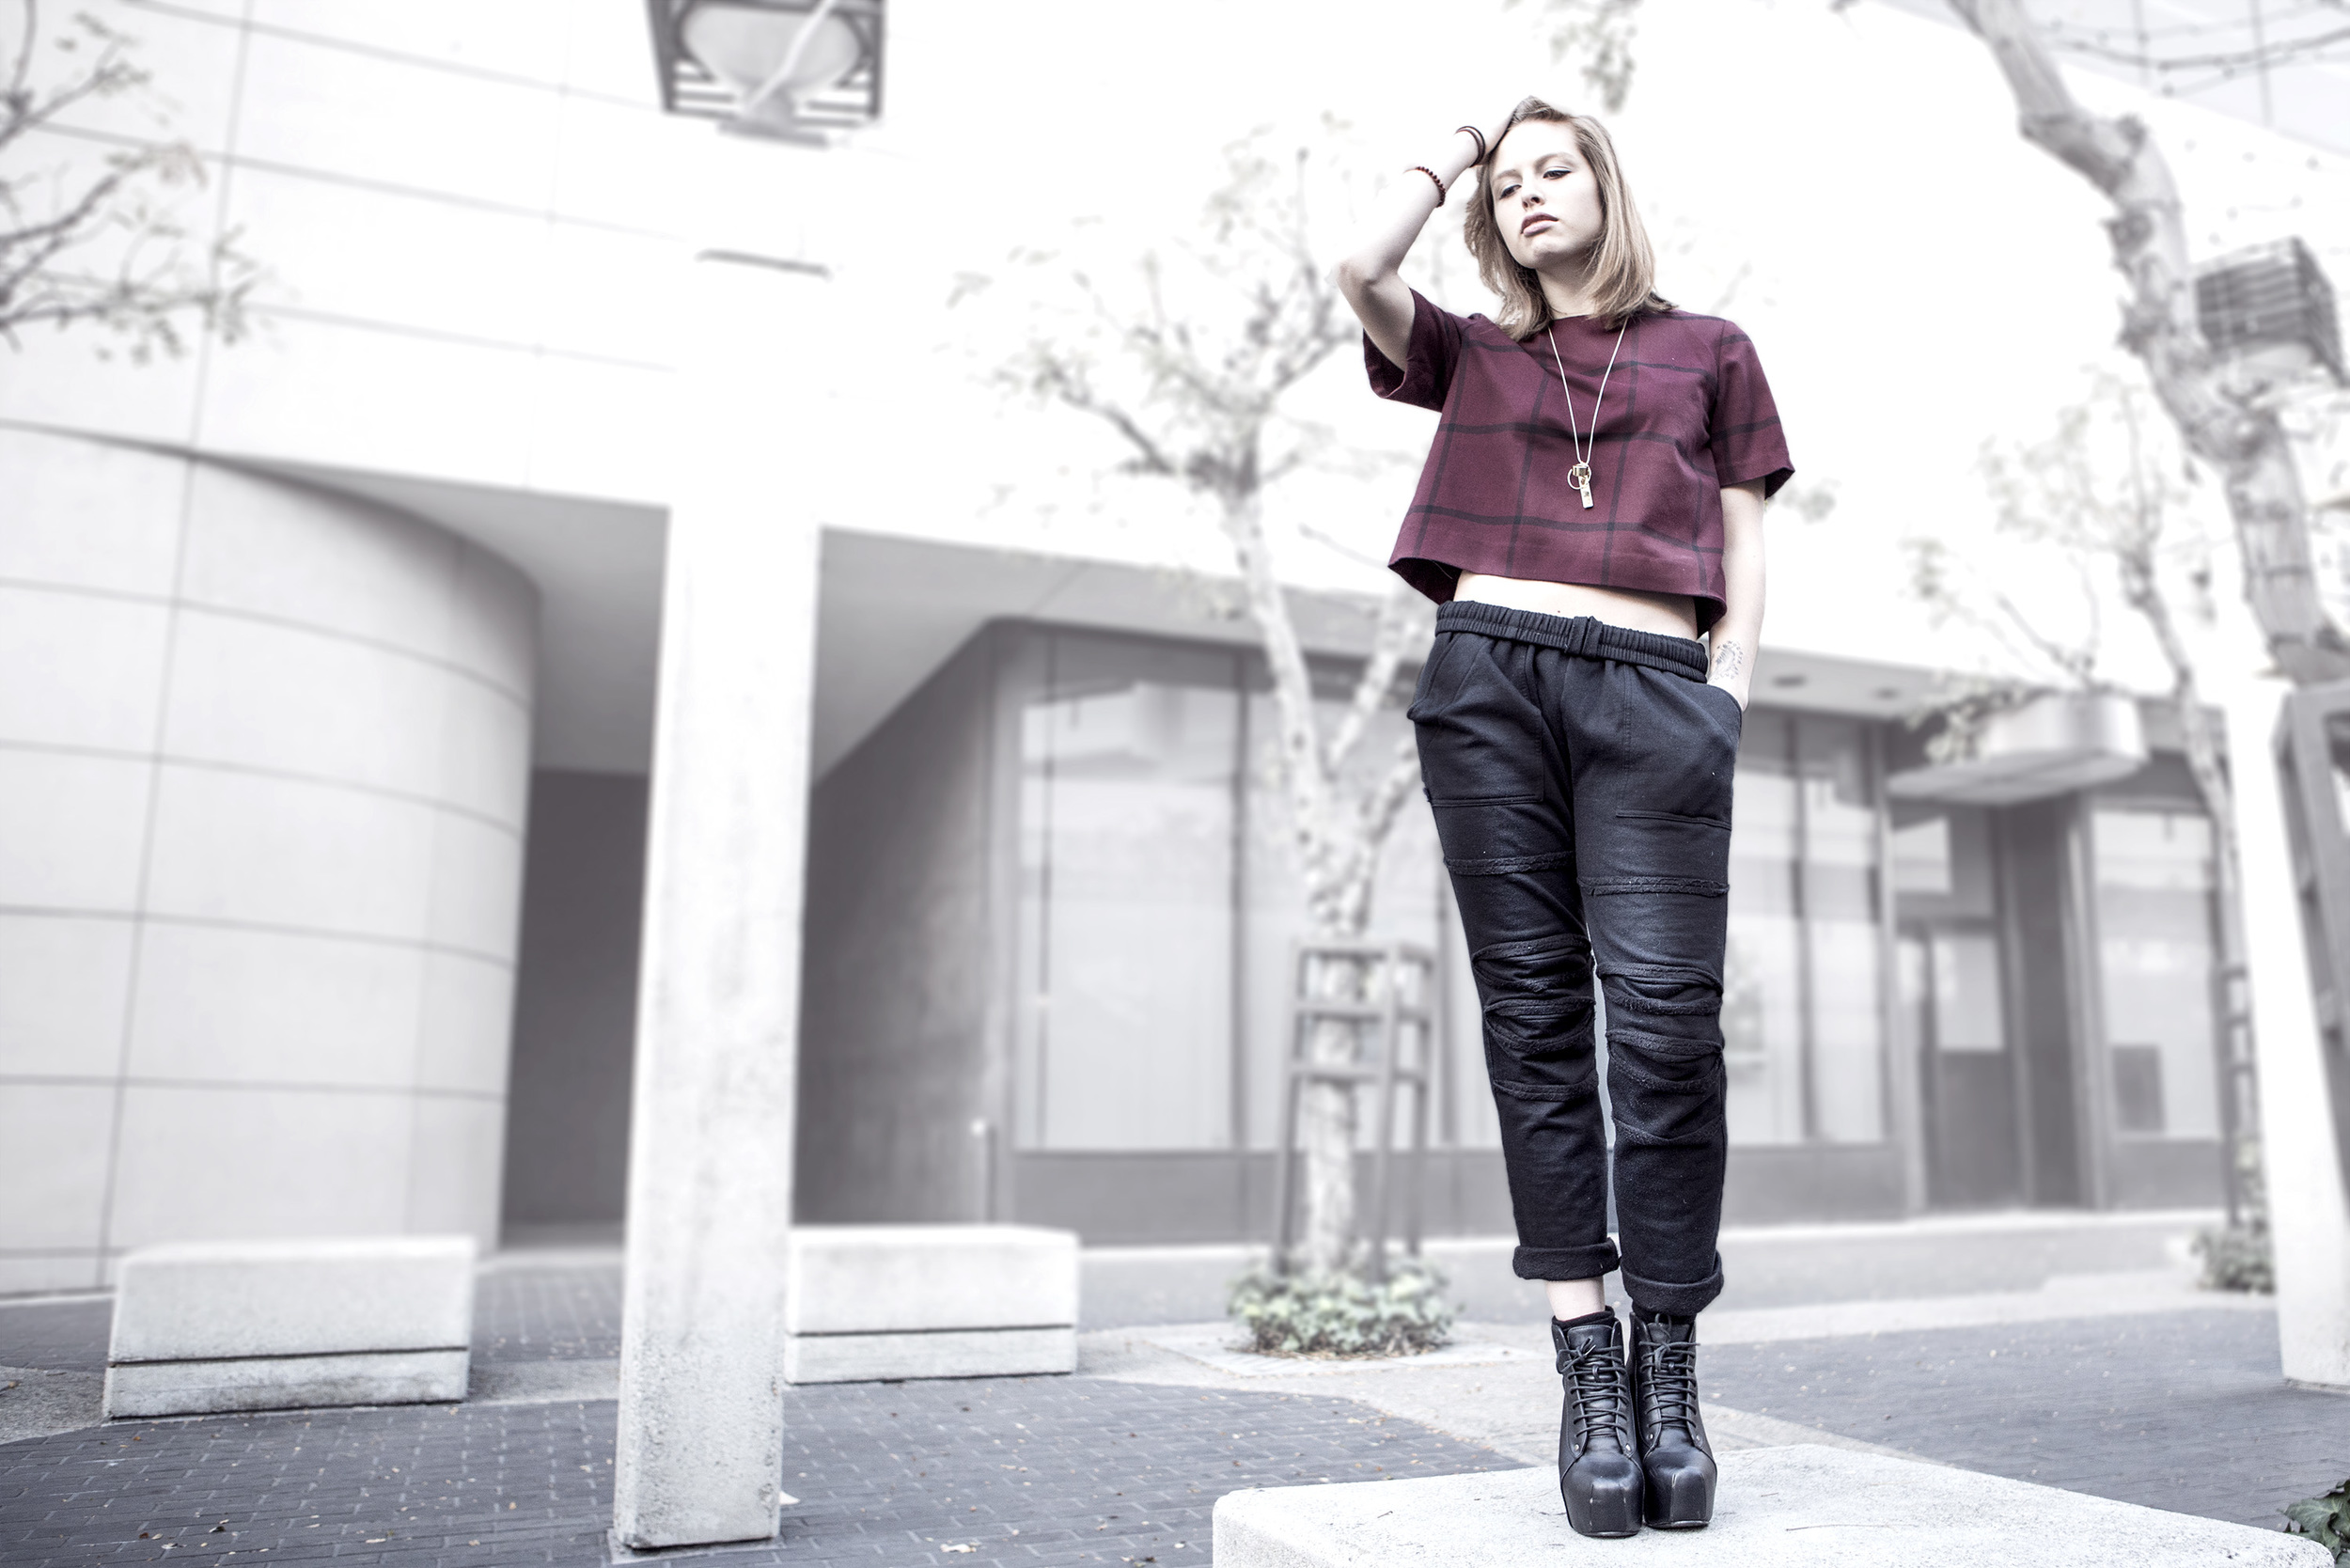 violet riot quest crew justfeng lookbook holiday editorial